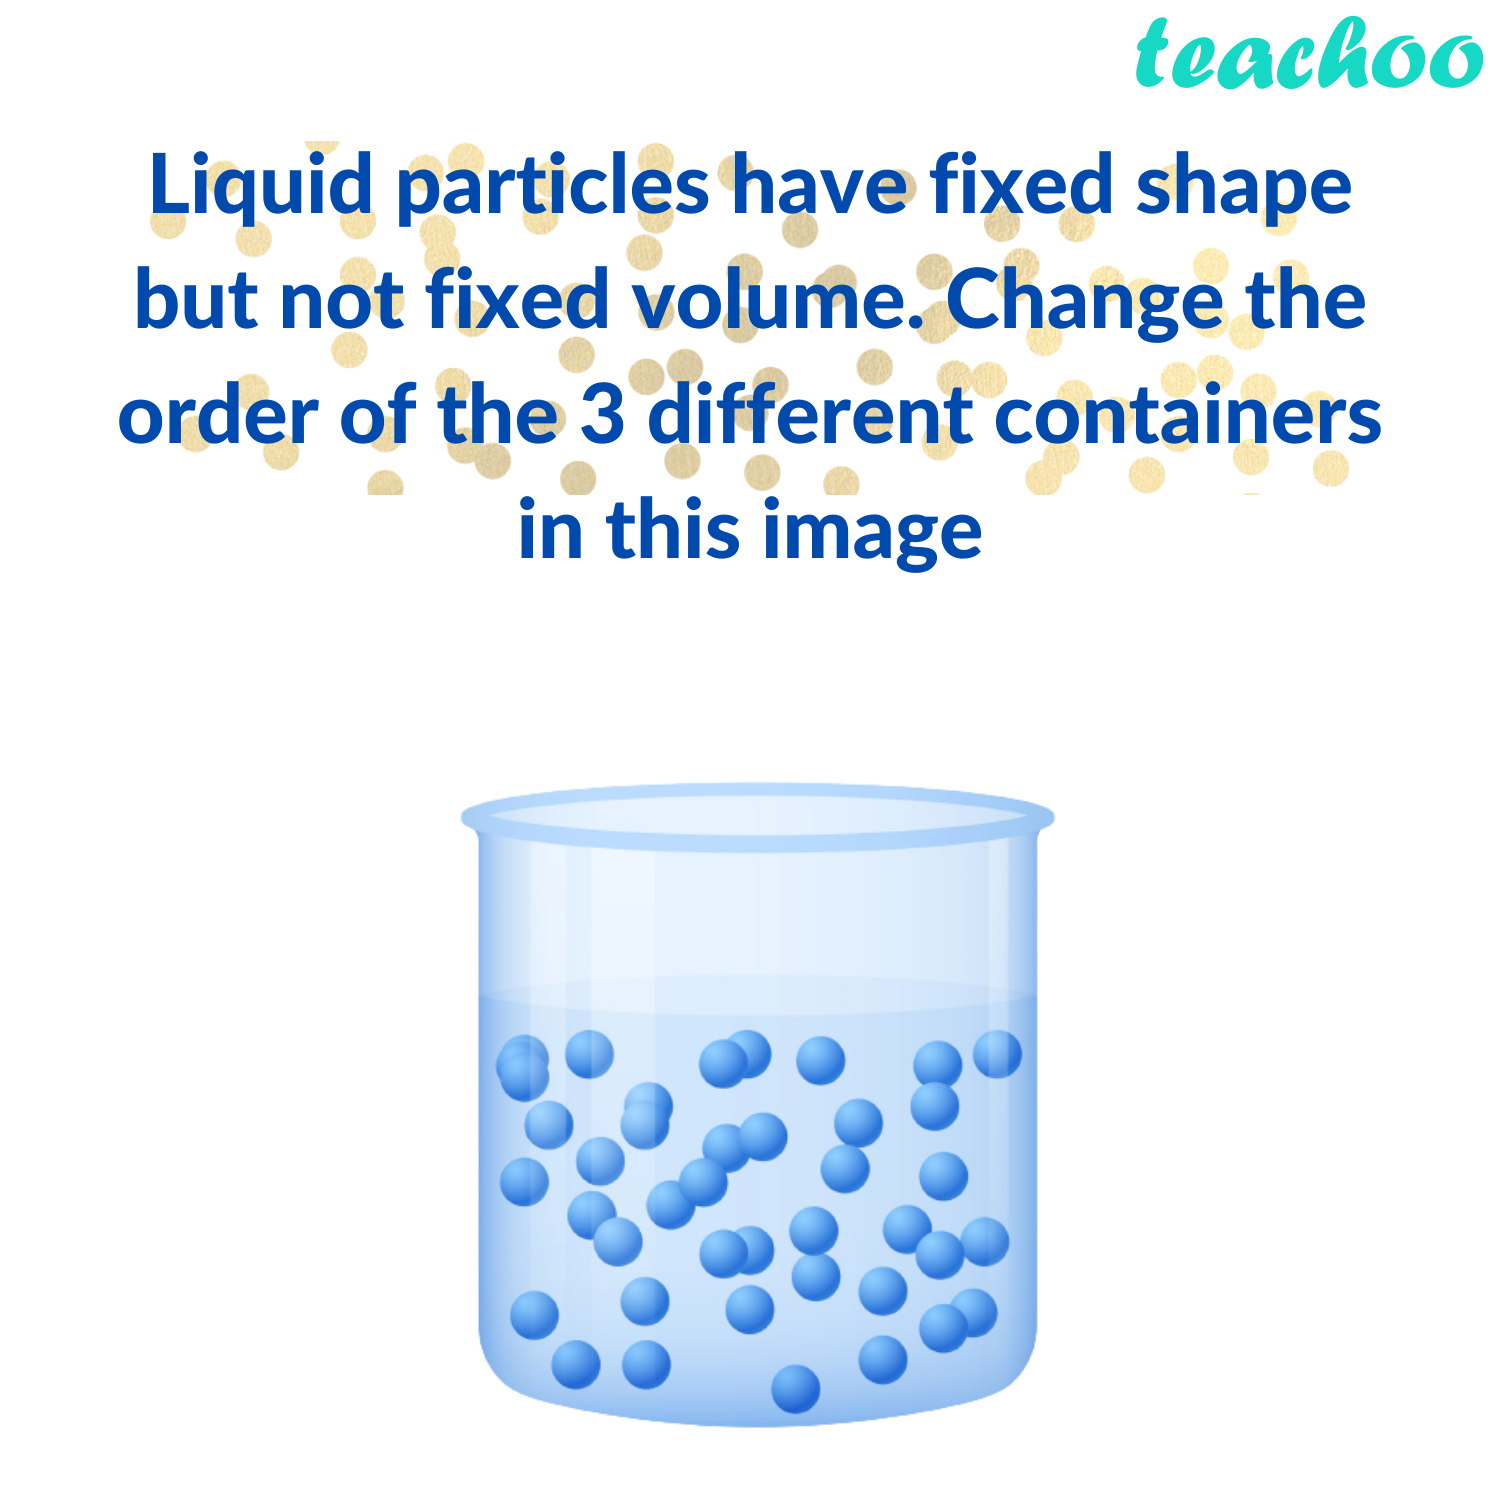 Liquid particles have fixed shape but not fixed volume. Change the order of the 3 different containers in this image - Teachoo.png